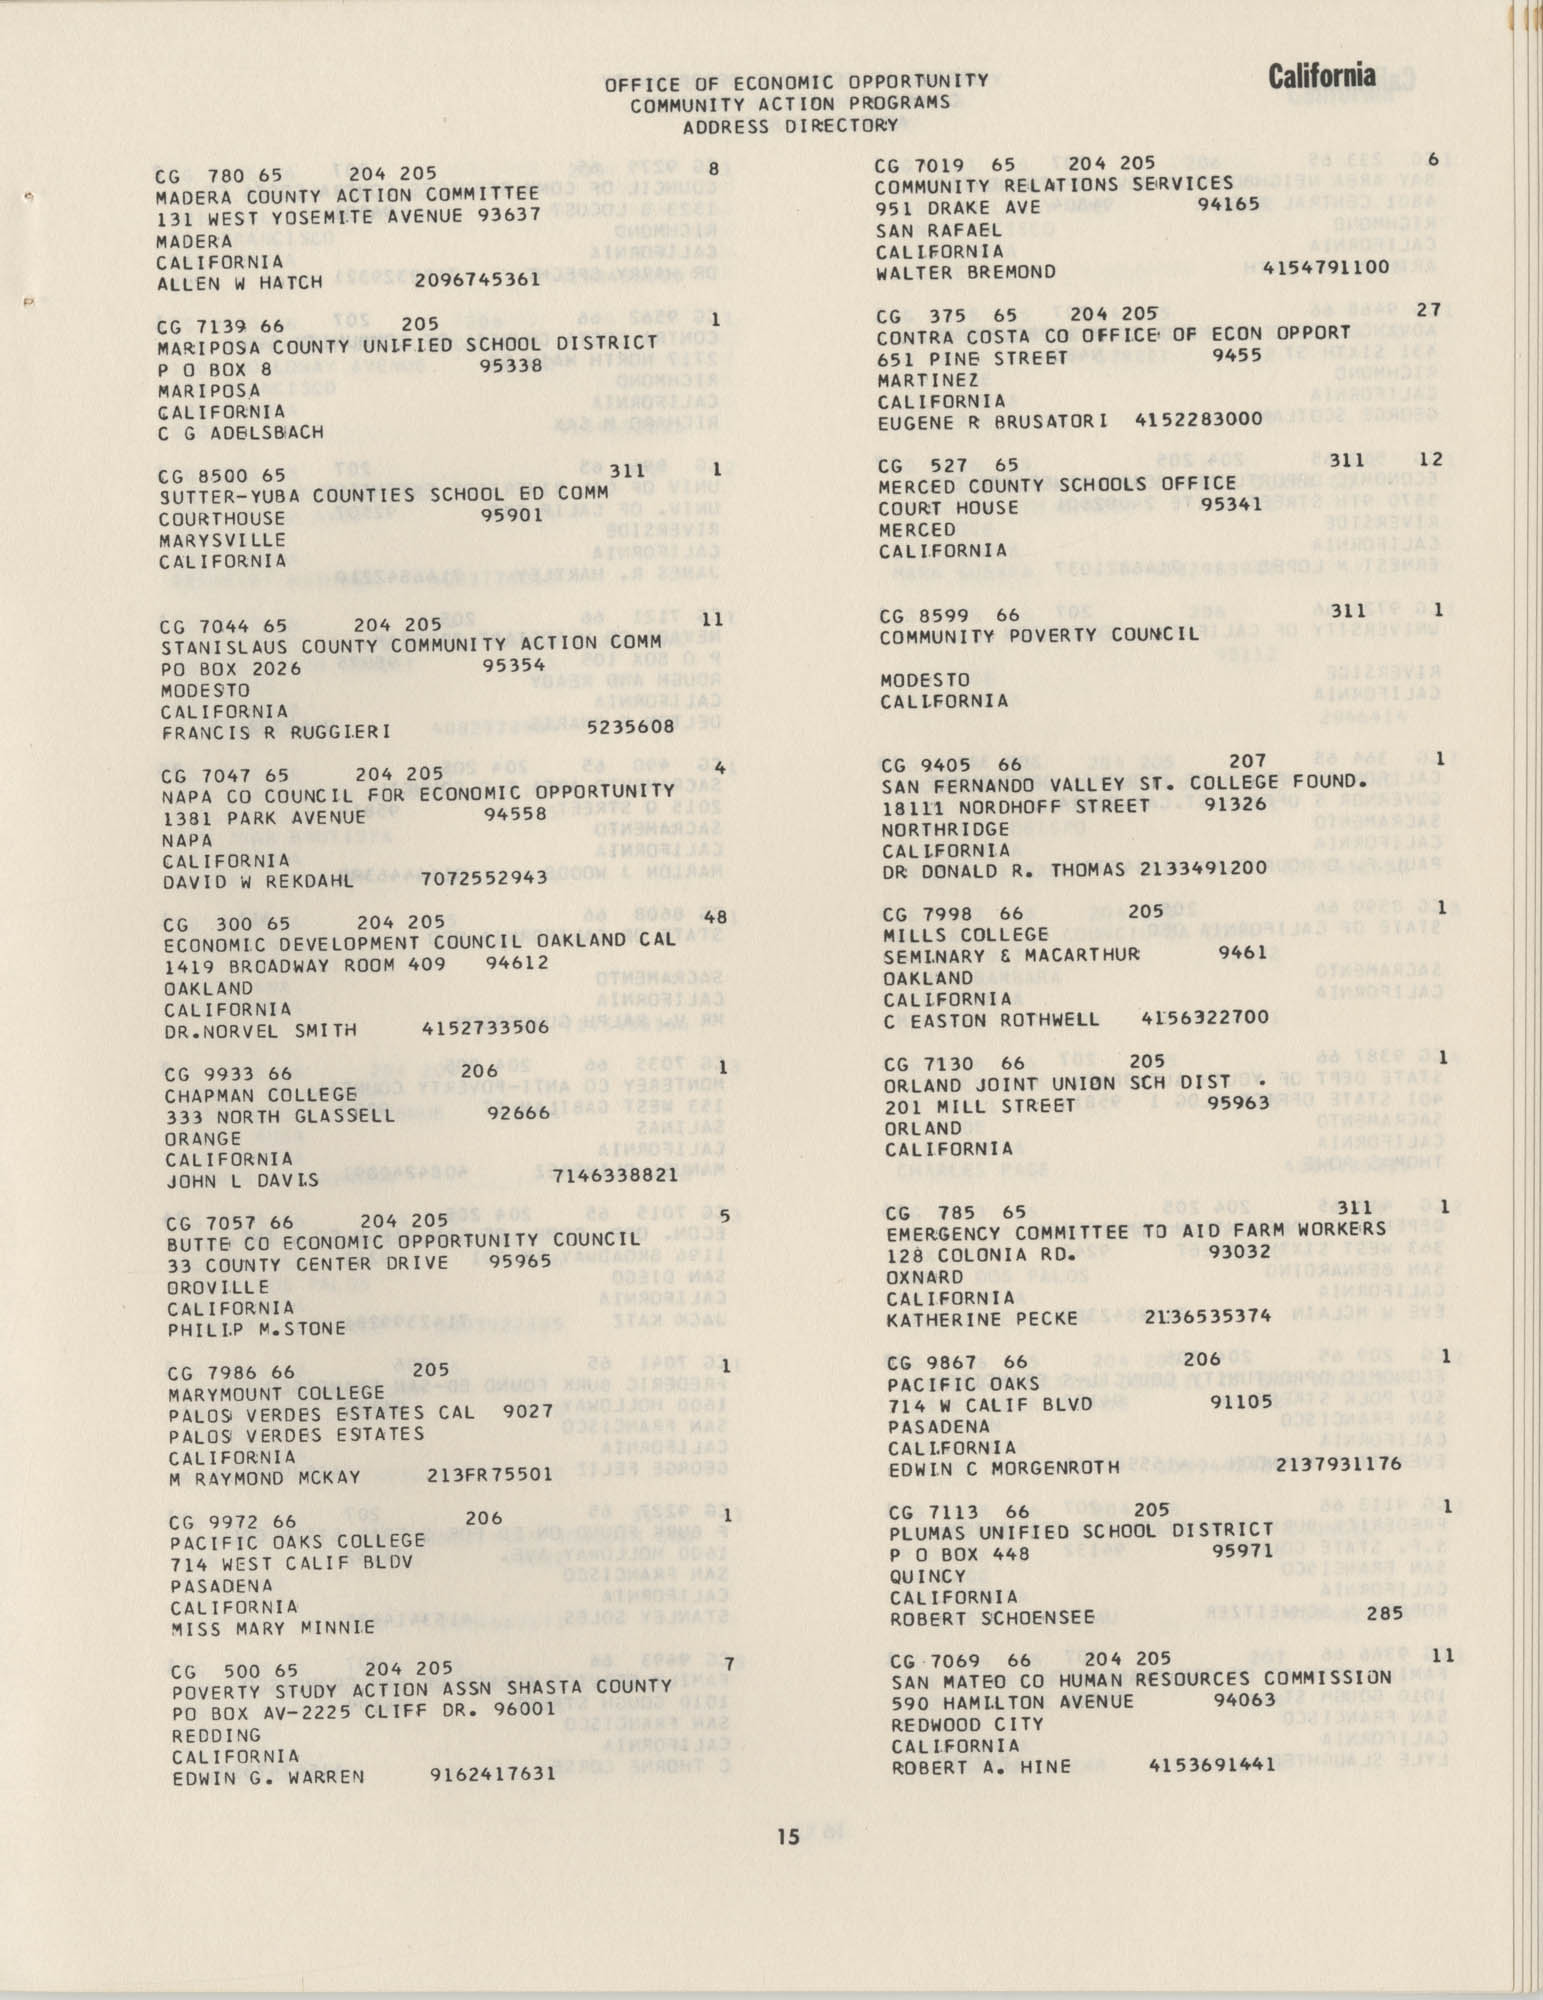 Community Action Programs Directory, June 15, 1966, Page 15